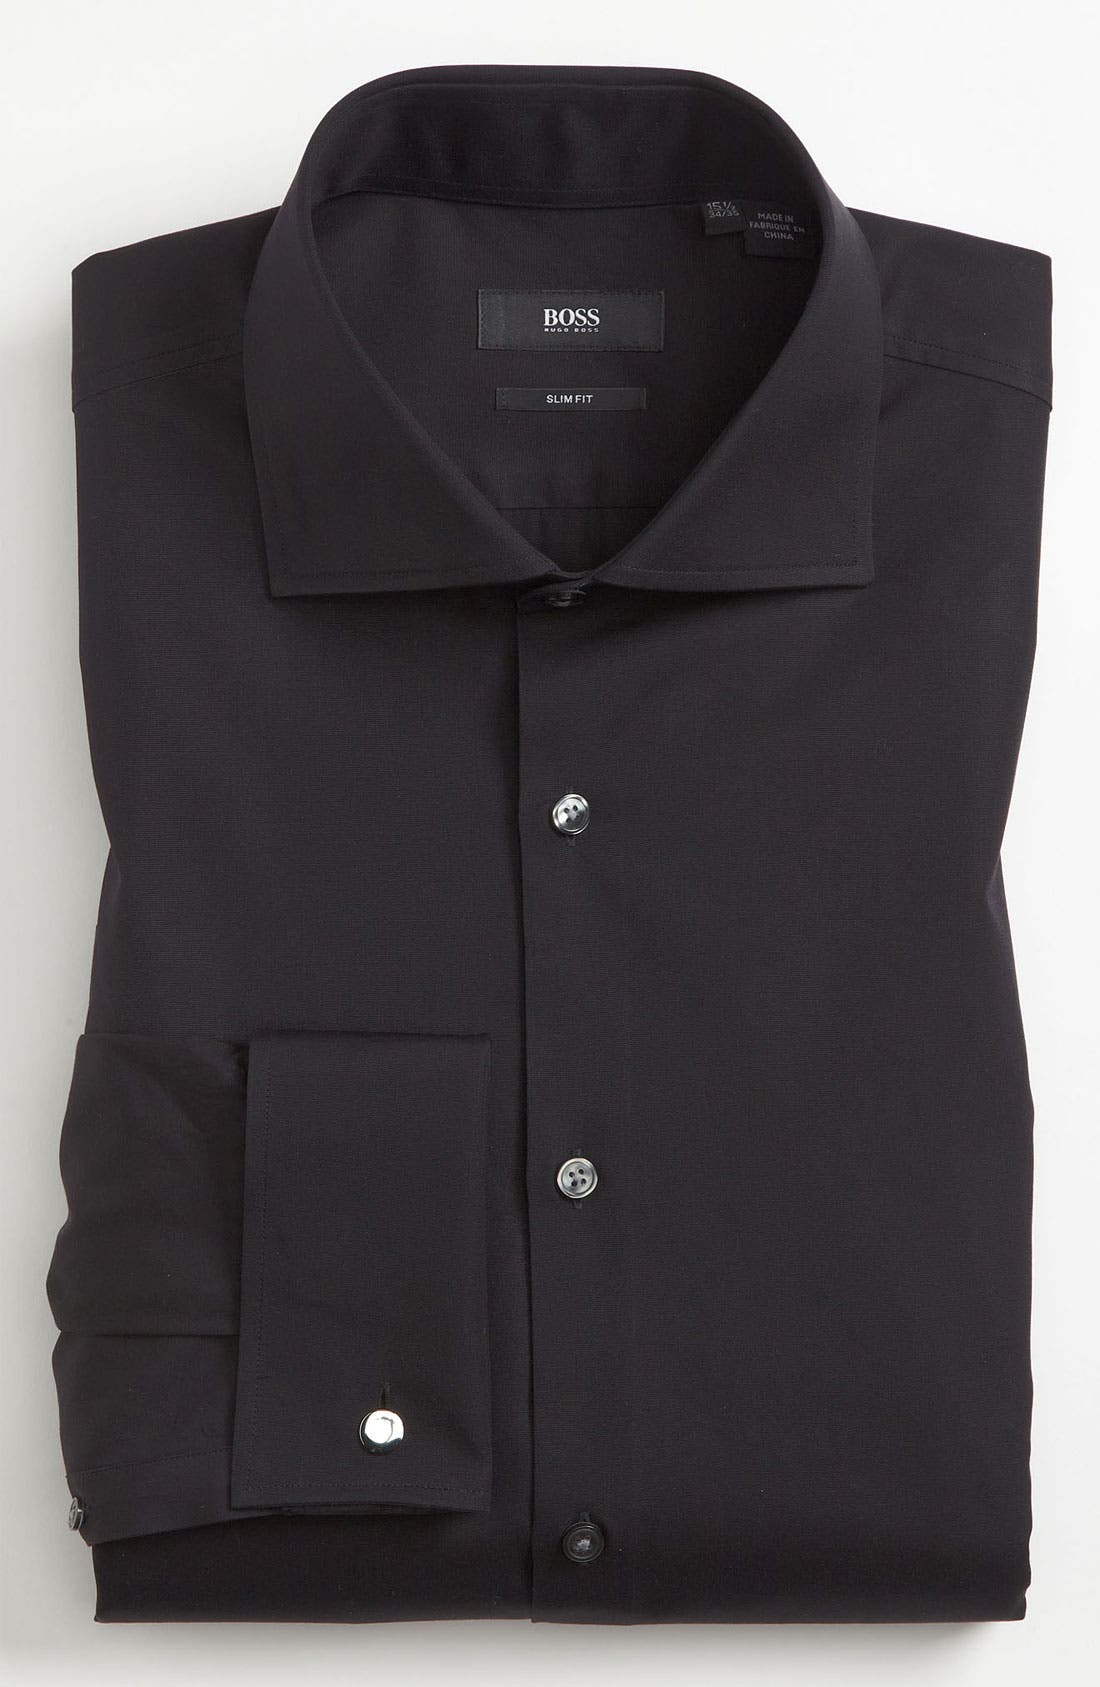 Main Image - BOSS Slim Fit Dress Shirt